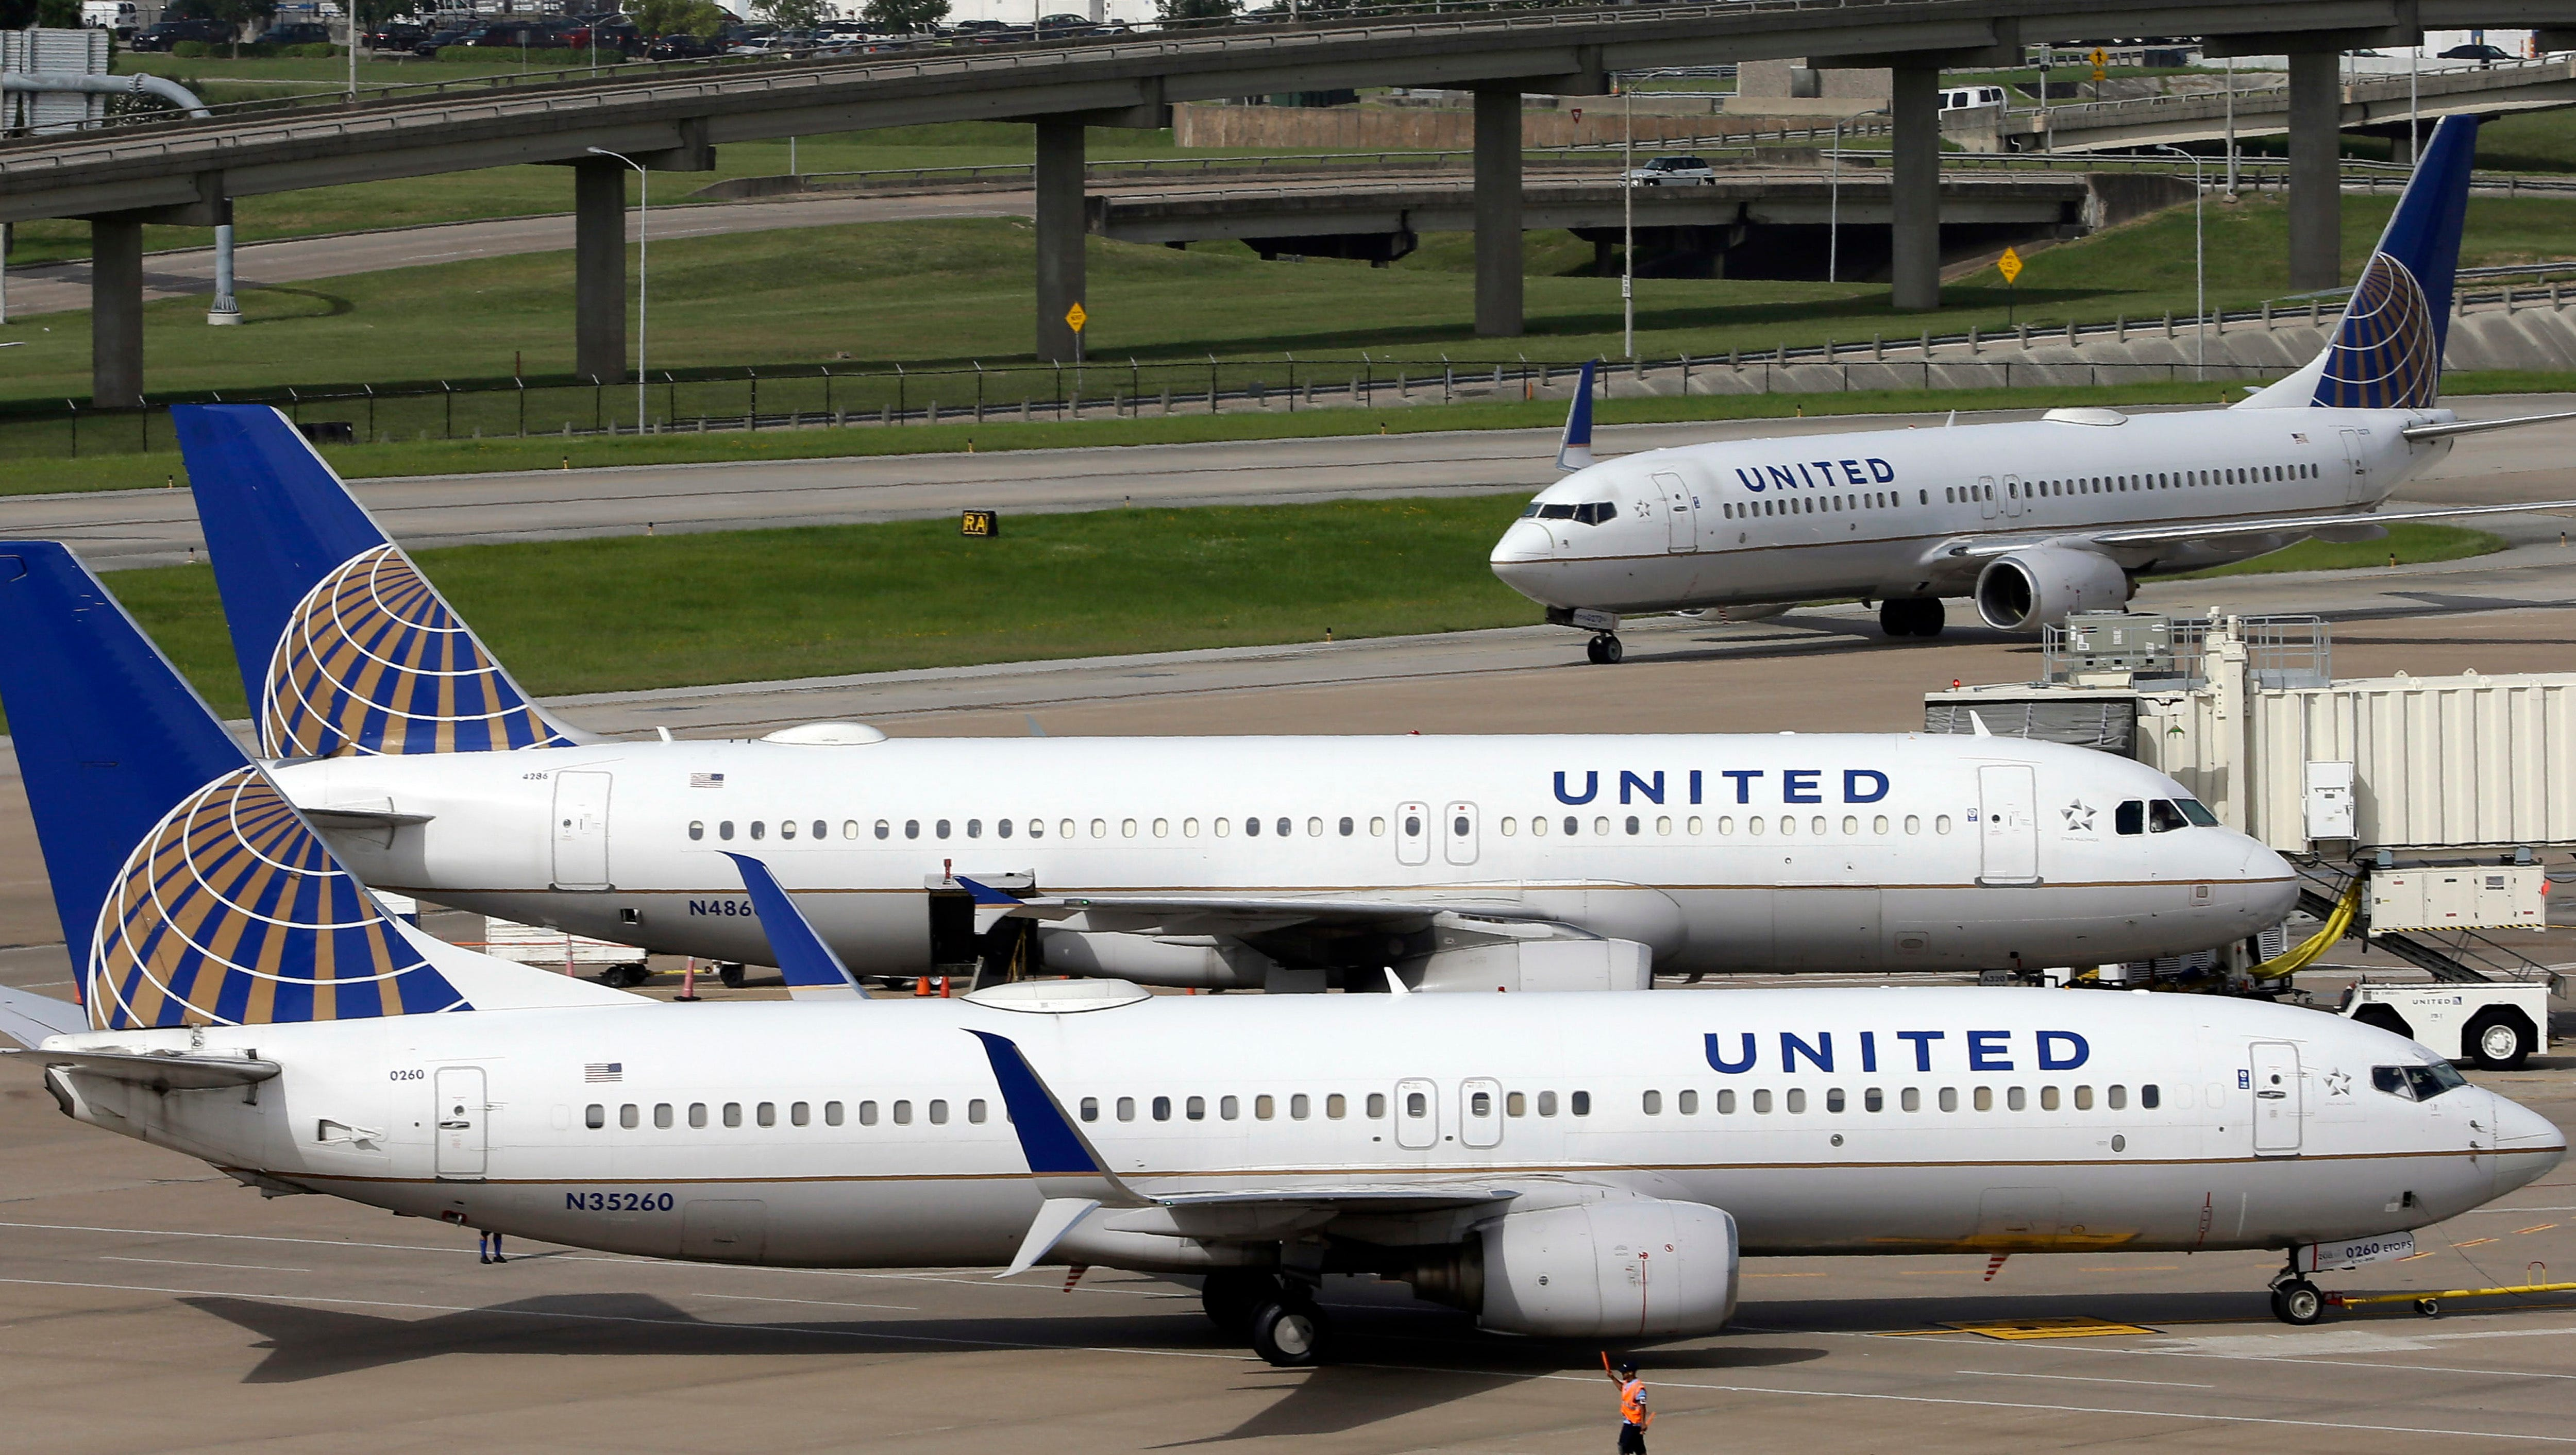 """FILE - In this July 8, 2015, file photo, United Airlines planes are seen on the tarmac at the George Bush Intercontinental Airport in Houston. United Airlines says a disruptive passenger on a flight from Shanghai to New Jersey was asked to get off, resulting in an unscheduled stop in San Francisco and an arrival delayed by eight hours. Videos on social media showed an unidentified elderly man wearing a red """"Make America Great Again"""" cap heatedly insisting that he was entitled to a seat and yelling at fellow passengers. (AP Photo/David J. Phillip, File) ORG XMIT: BKWS306"""